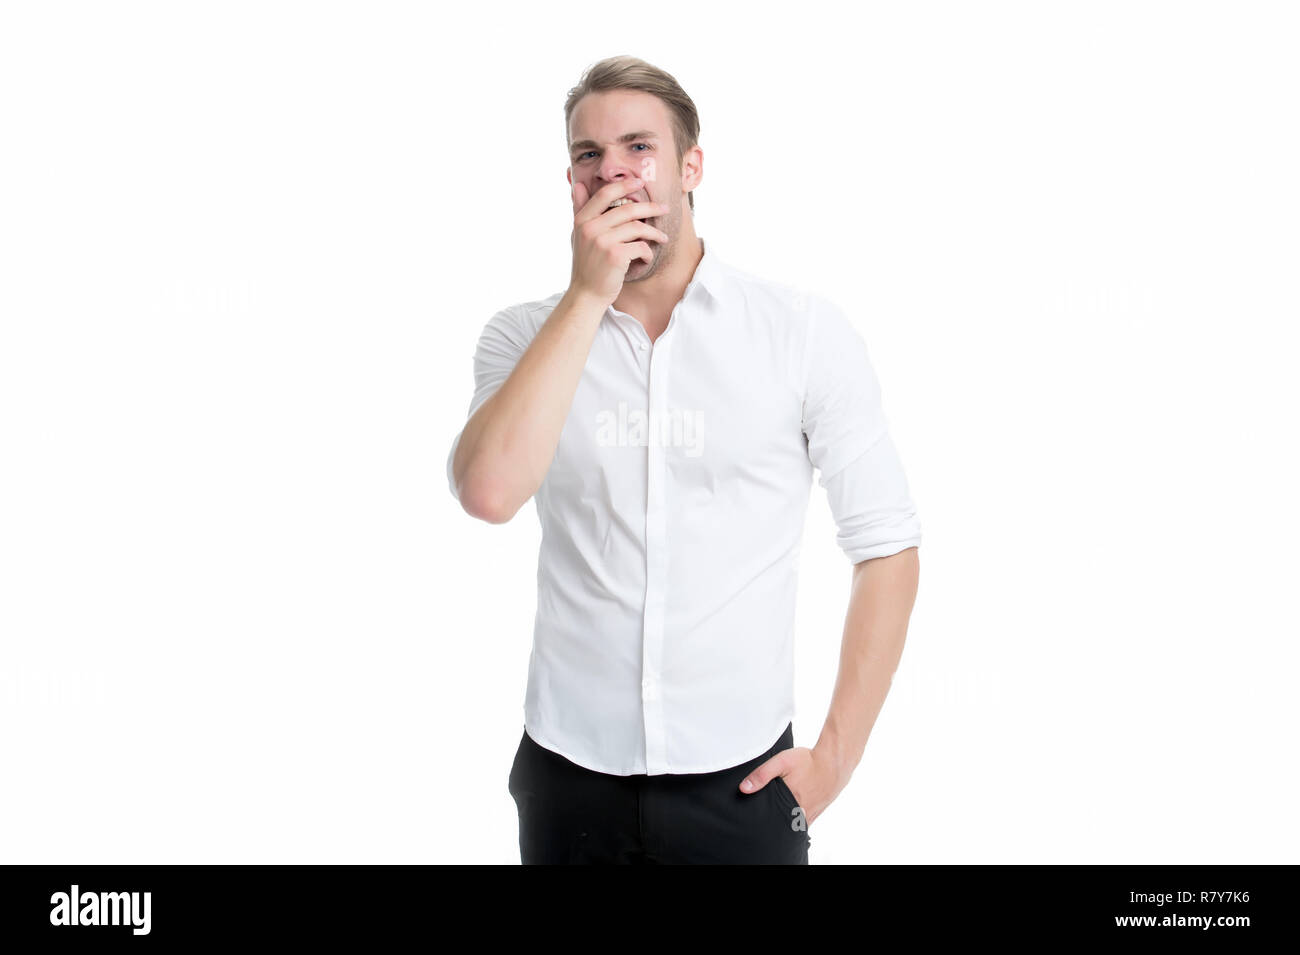 Man bored yawning white background. Fed up with this. Feel tired and sleepy. Sleepy guy in formal clothes. Bored worker yawning. Office worker cover mouth with palm while yawning. Why people yawn. - Stock Image